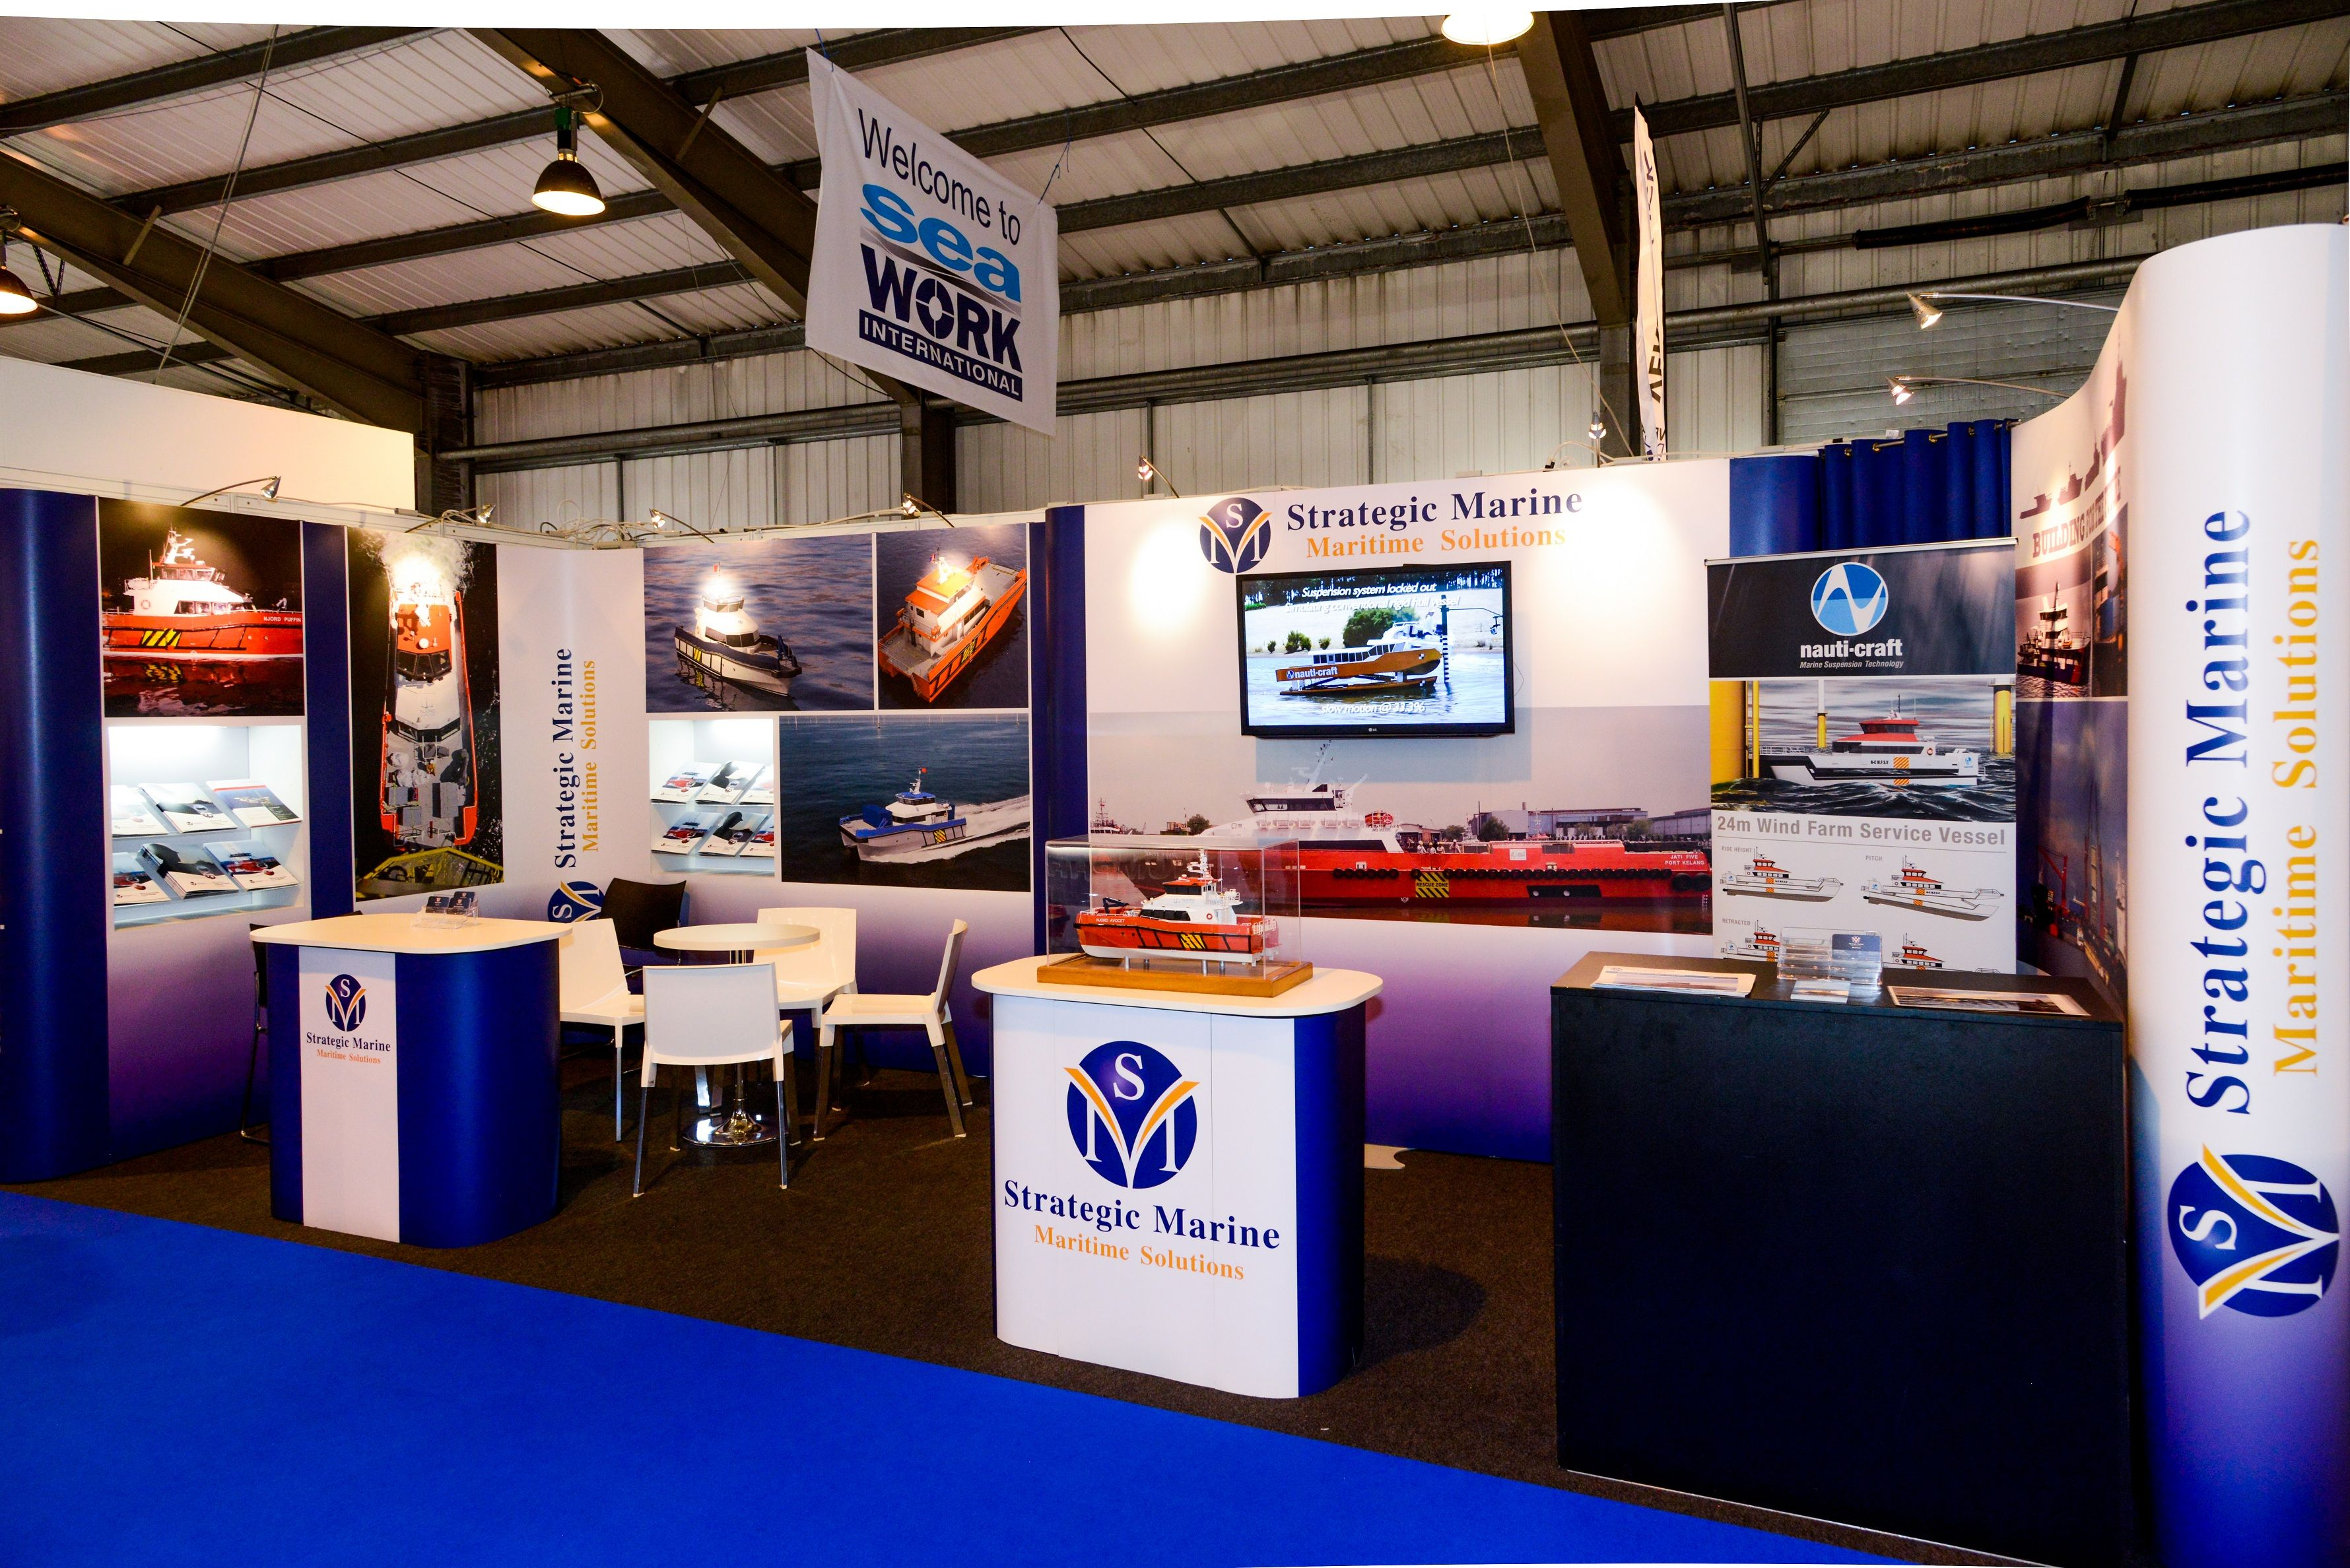 Modular Exhibition Stands Zone : Modular exhibition stand for strategic marine by quadrant2design at